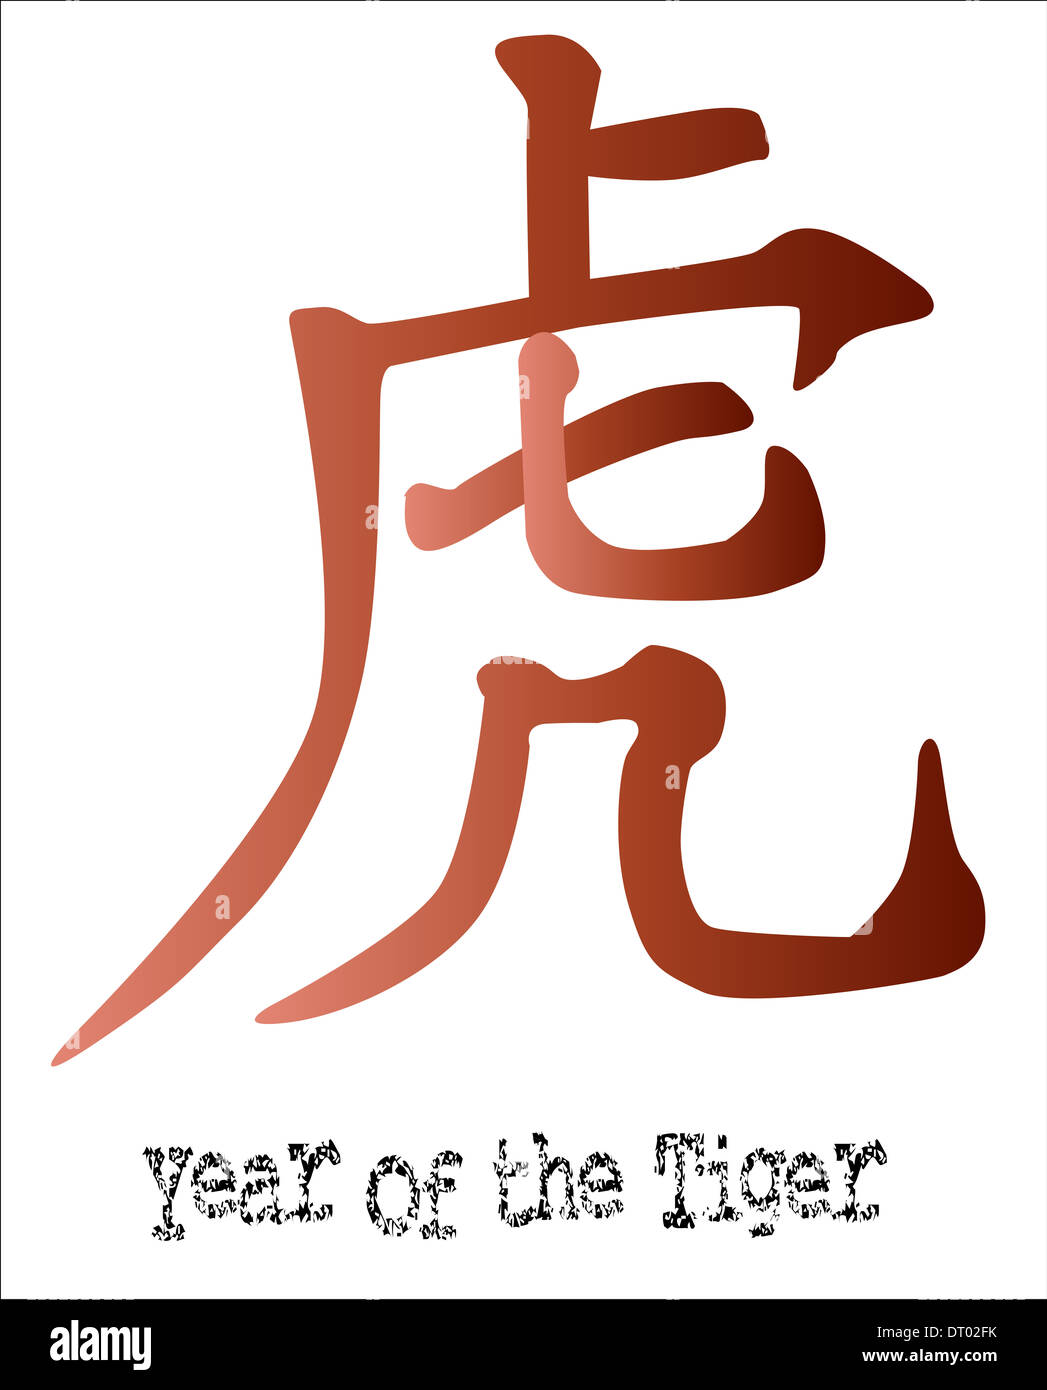 Year of the tiger, one of the twelve logograms depicting the 12 Chinese animal years. - Stock Image